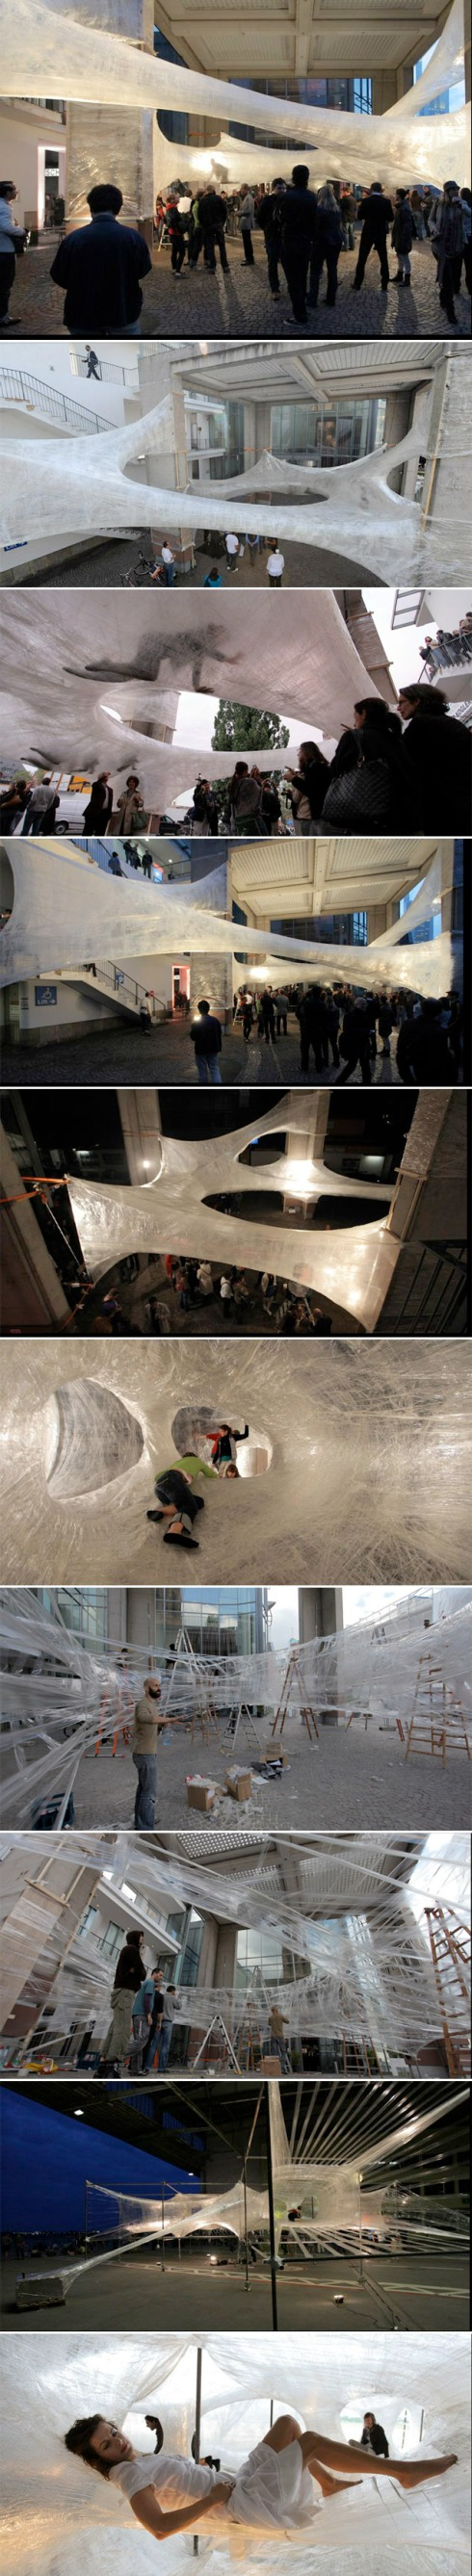 Cool packing tape installations, art, numen, Austria, Croatia